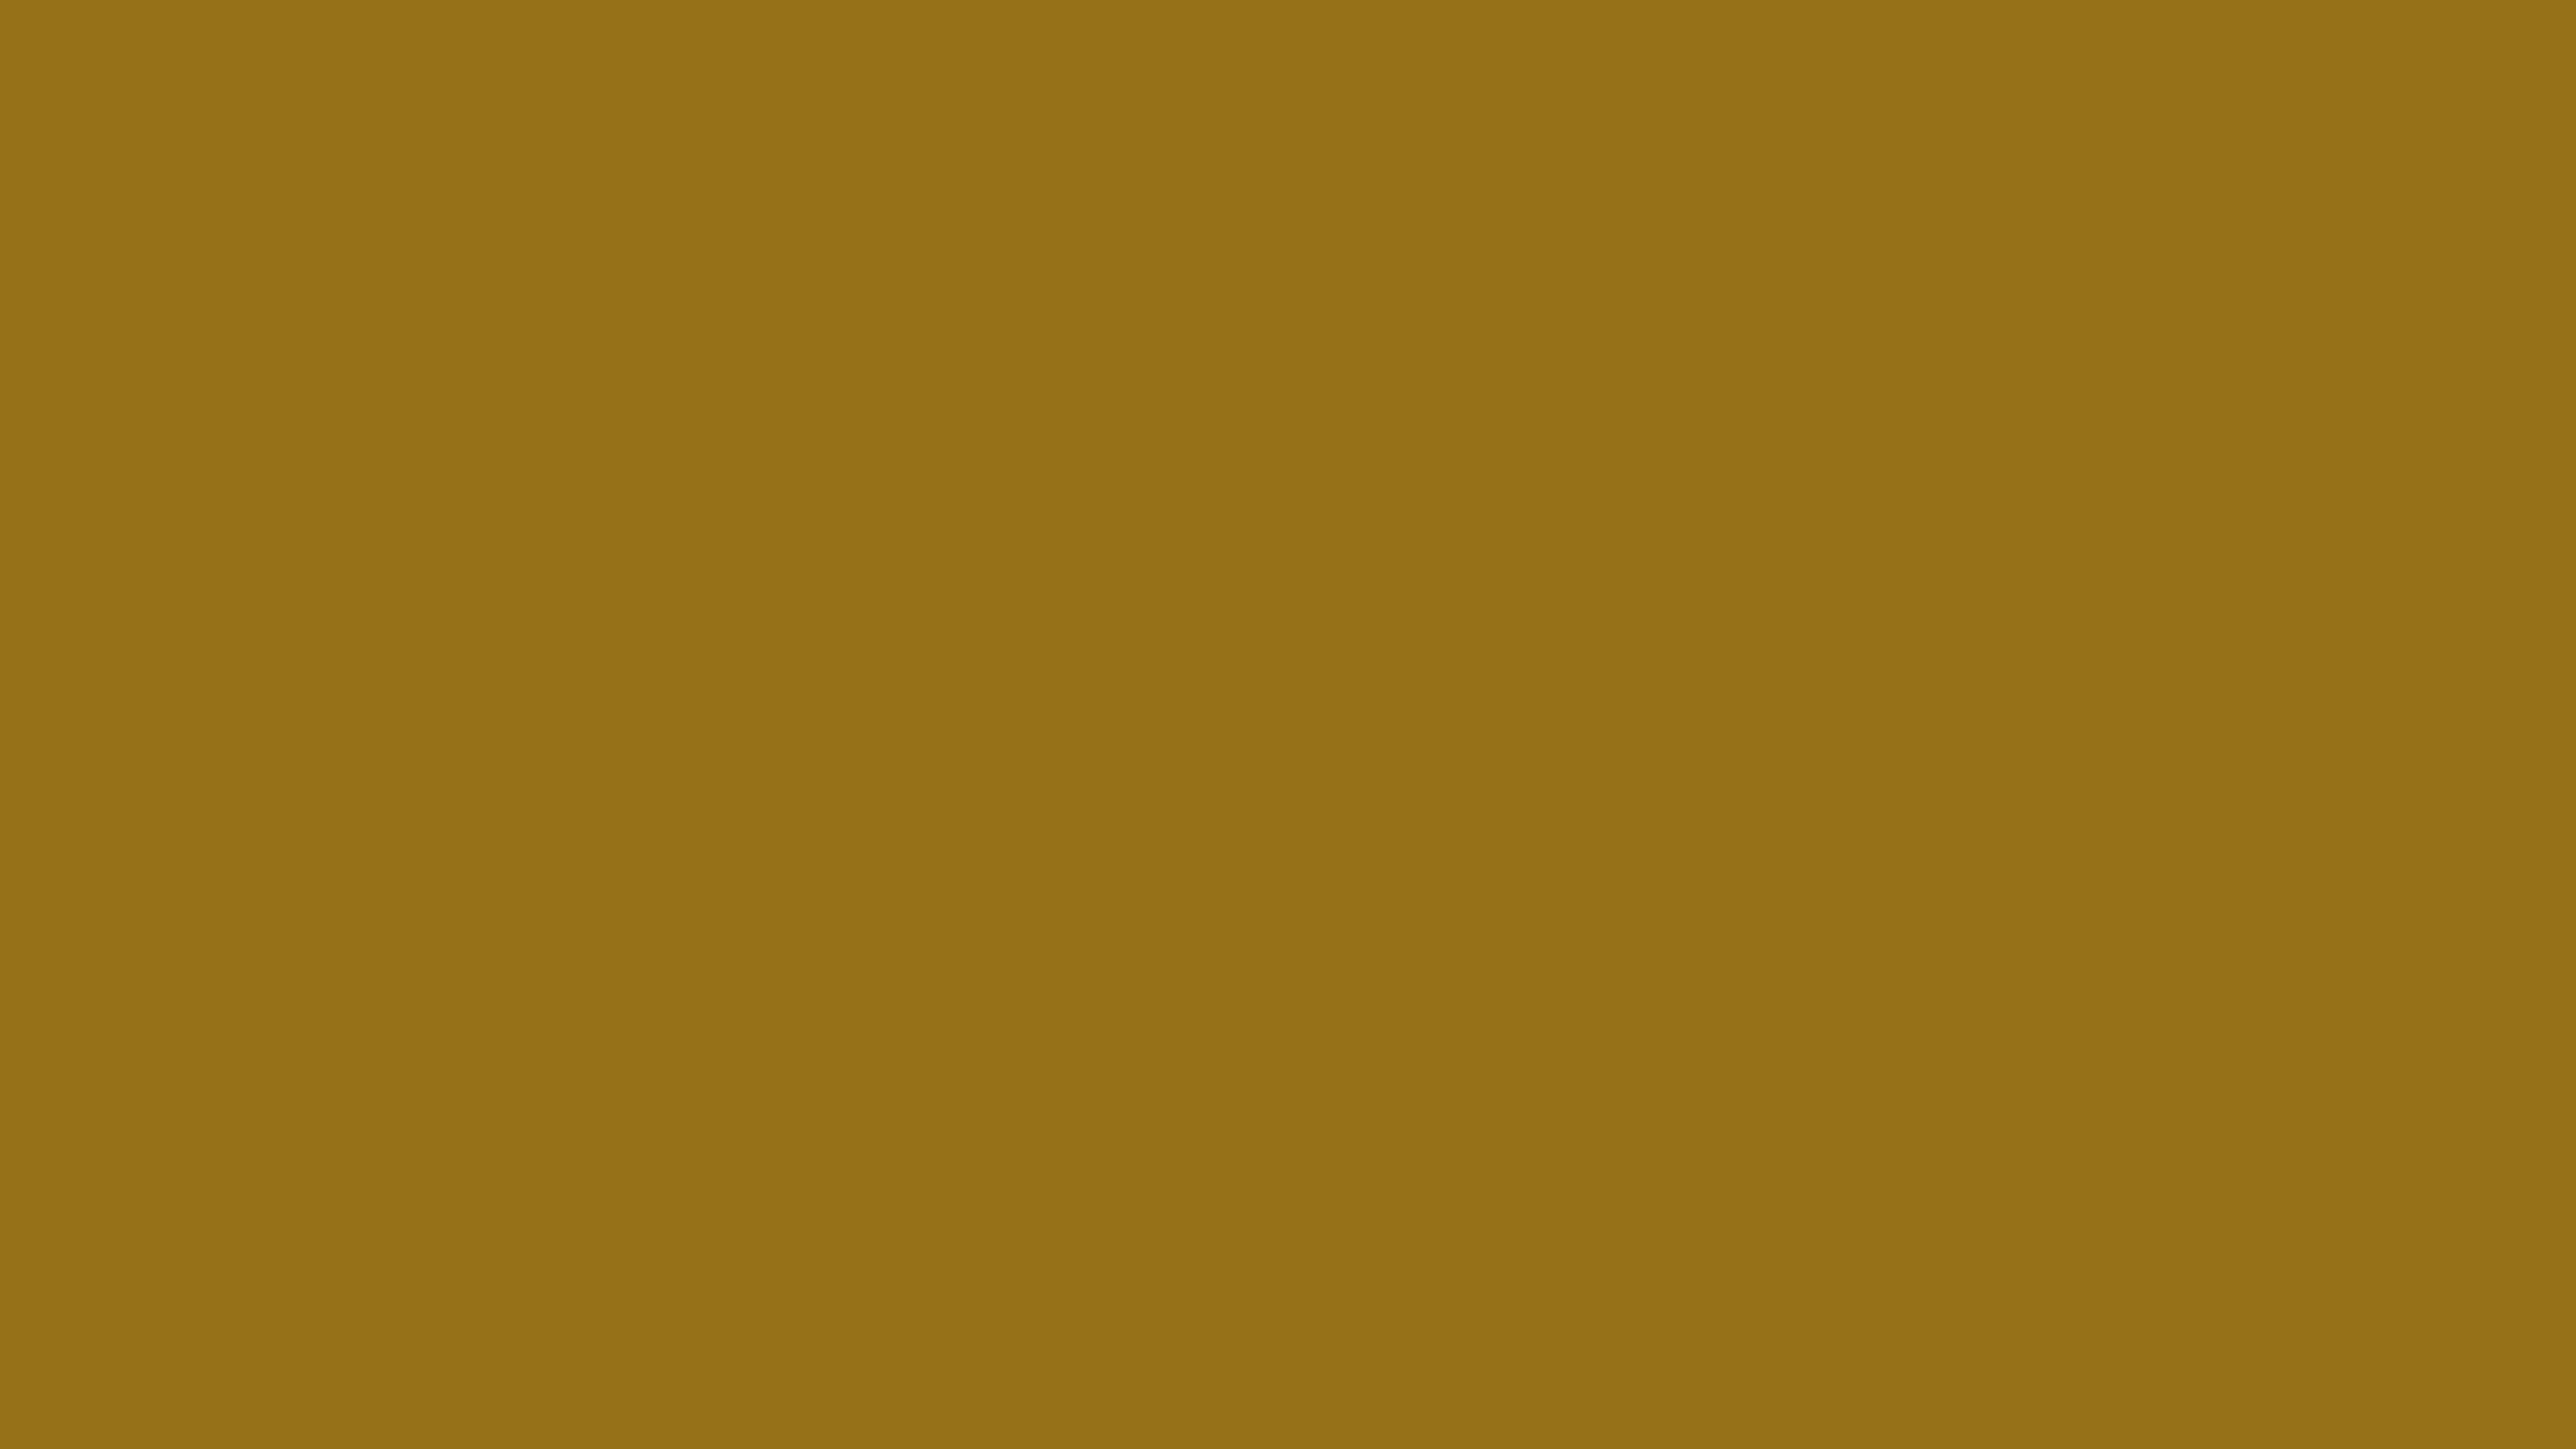 5120x2880 Drab Solid Color Background